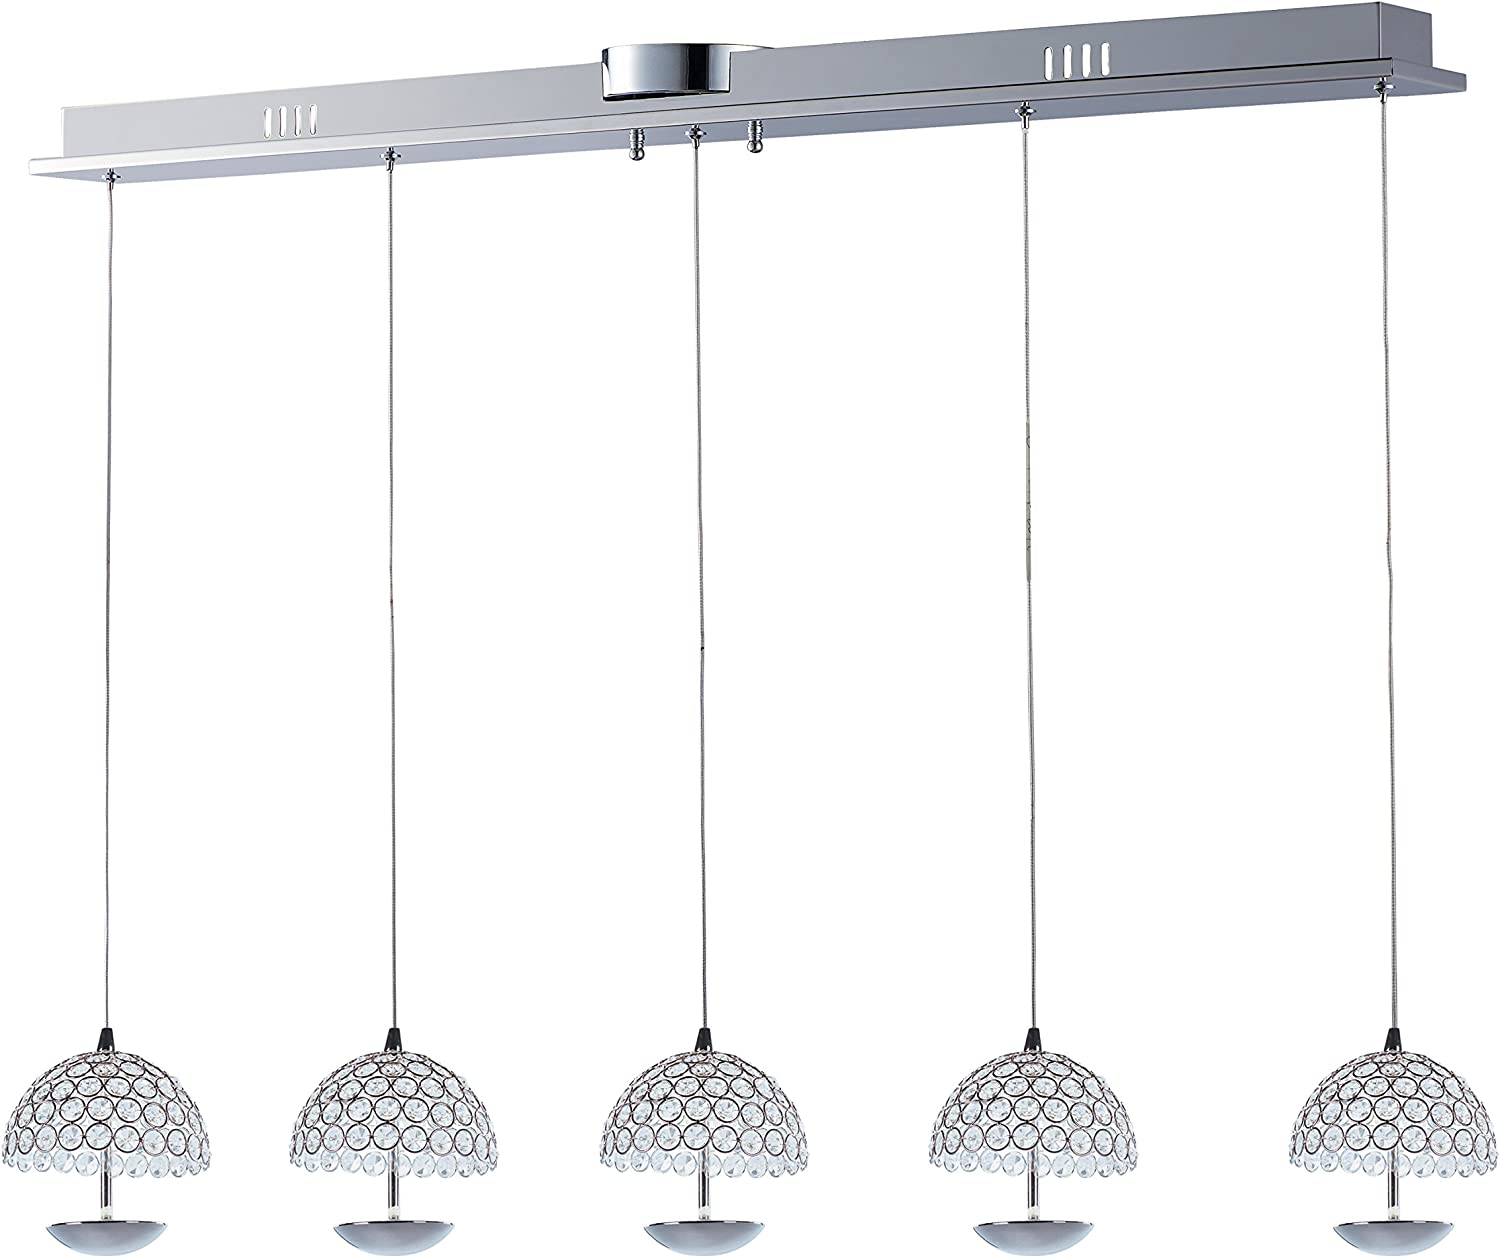 Rated Lumens ET2 E24495-20PC Parasol 5-Light LED Multi-Light Pendant Polished Chrome Finish Shade Material Low-Voltage Electronic Dimmer 6W Max. LED Bulb Crystal Glass Dry Safety Rated